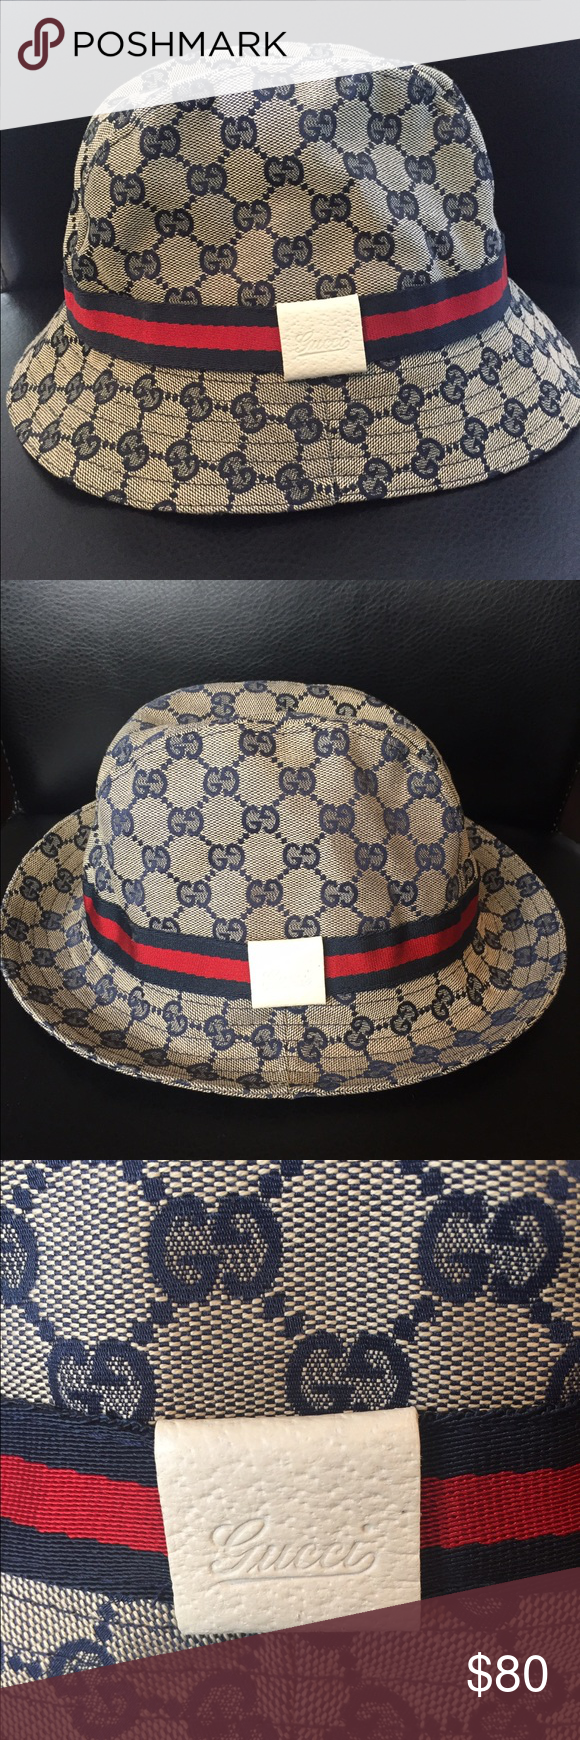 Gucci Monogram Fedora GG fabric with blue/red/blue signature web. 100% Authentic. Never worn. Excellent condition. Gucci Accessories Hats